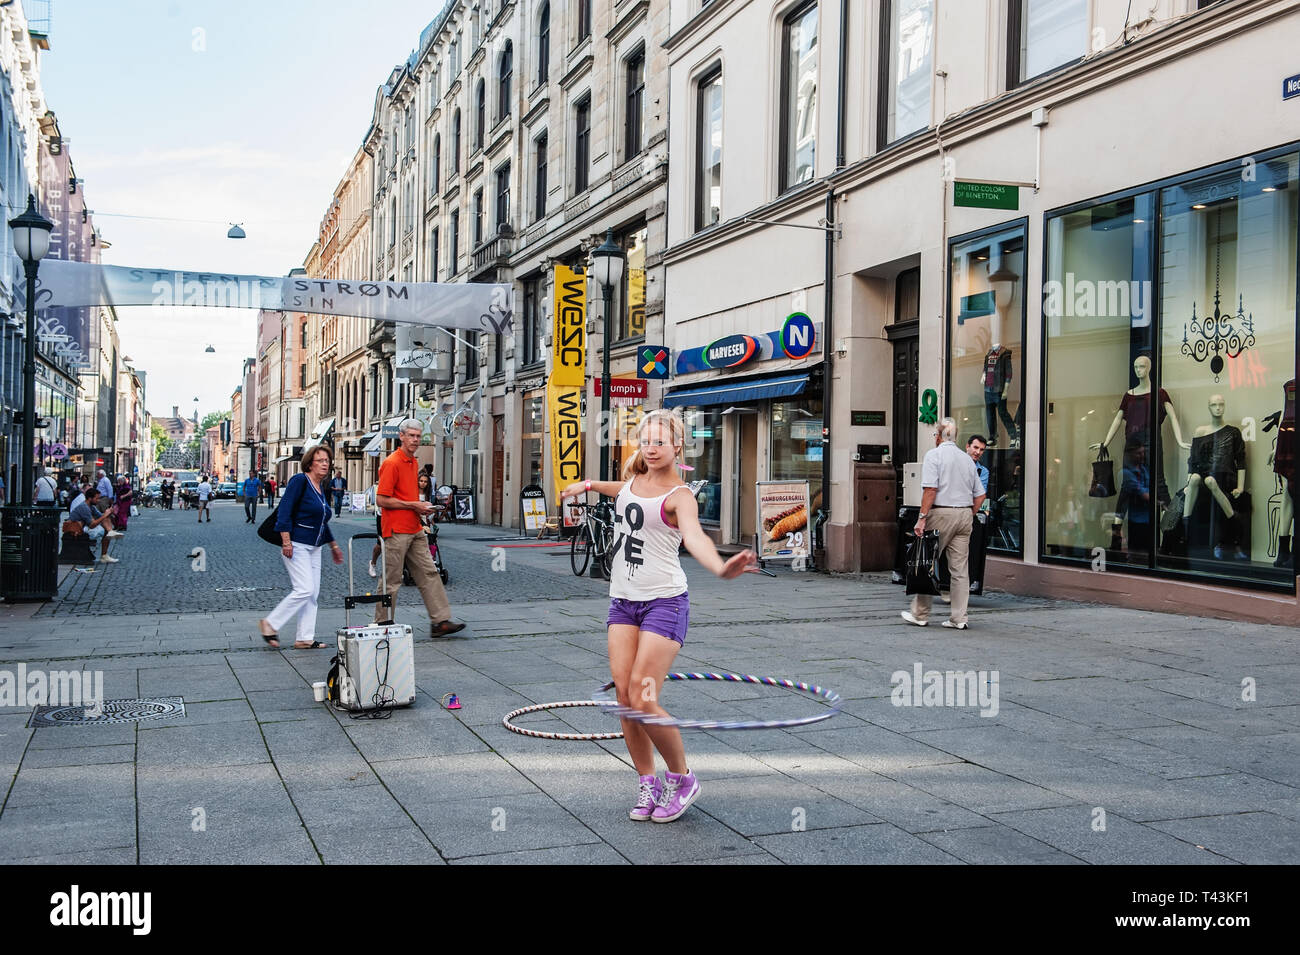 Norway, Oslo. August 1, 2013. Girl gymnast dancing in the square with Oslo. Additional income for the student. Editorial. - Stock Image